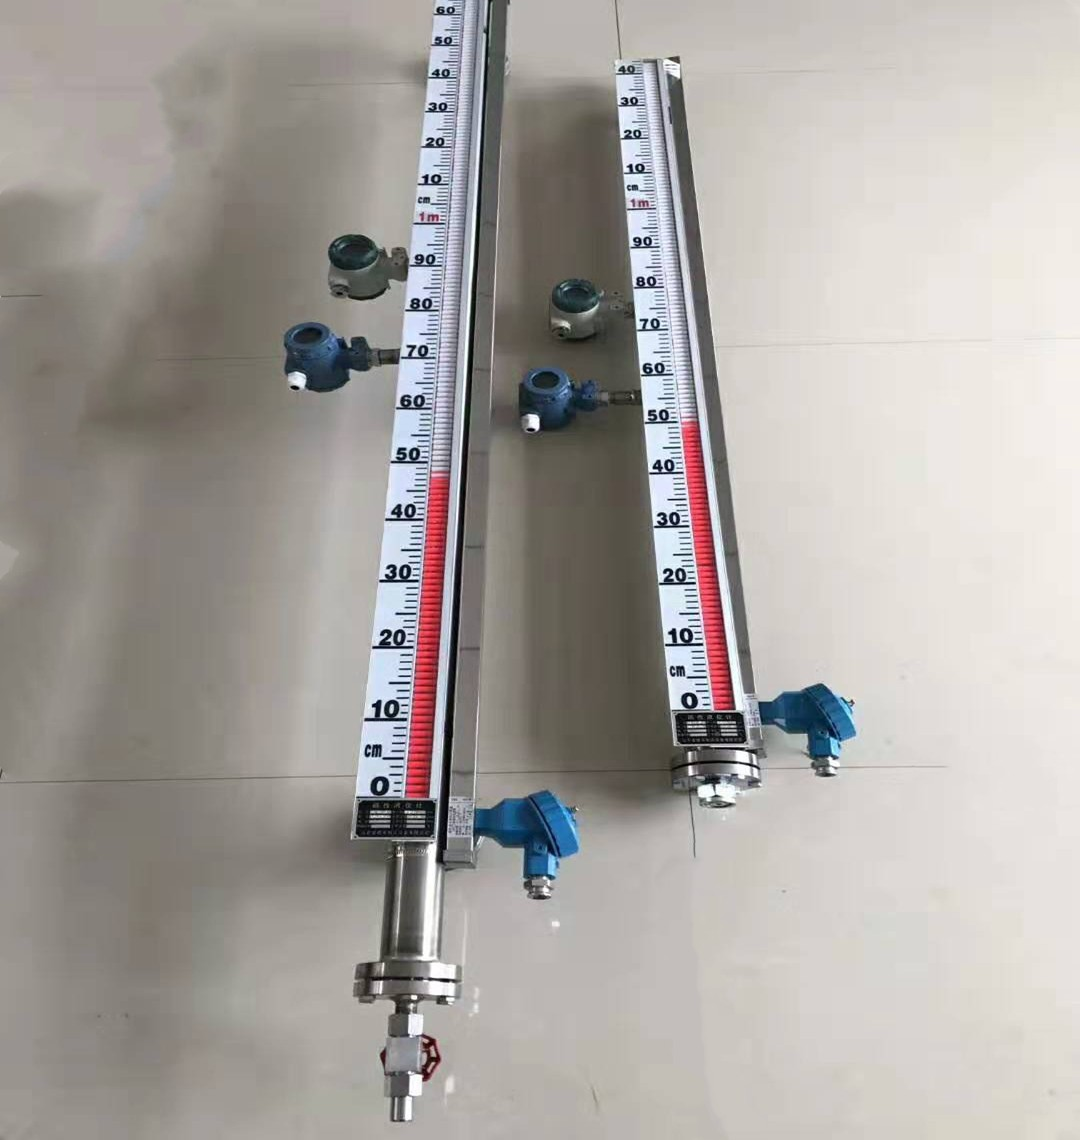 Different Sizes of 1.4m and 1.7m Magnetic Flap Level Gauge Manufacturers, Different Sizes of 1.4m and 1.7m Magnetic Flap Level Gauge Factory, Supply Different Sizes of 1.4m and 1.7m Magnetic Flap Level Gauge